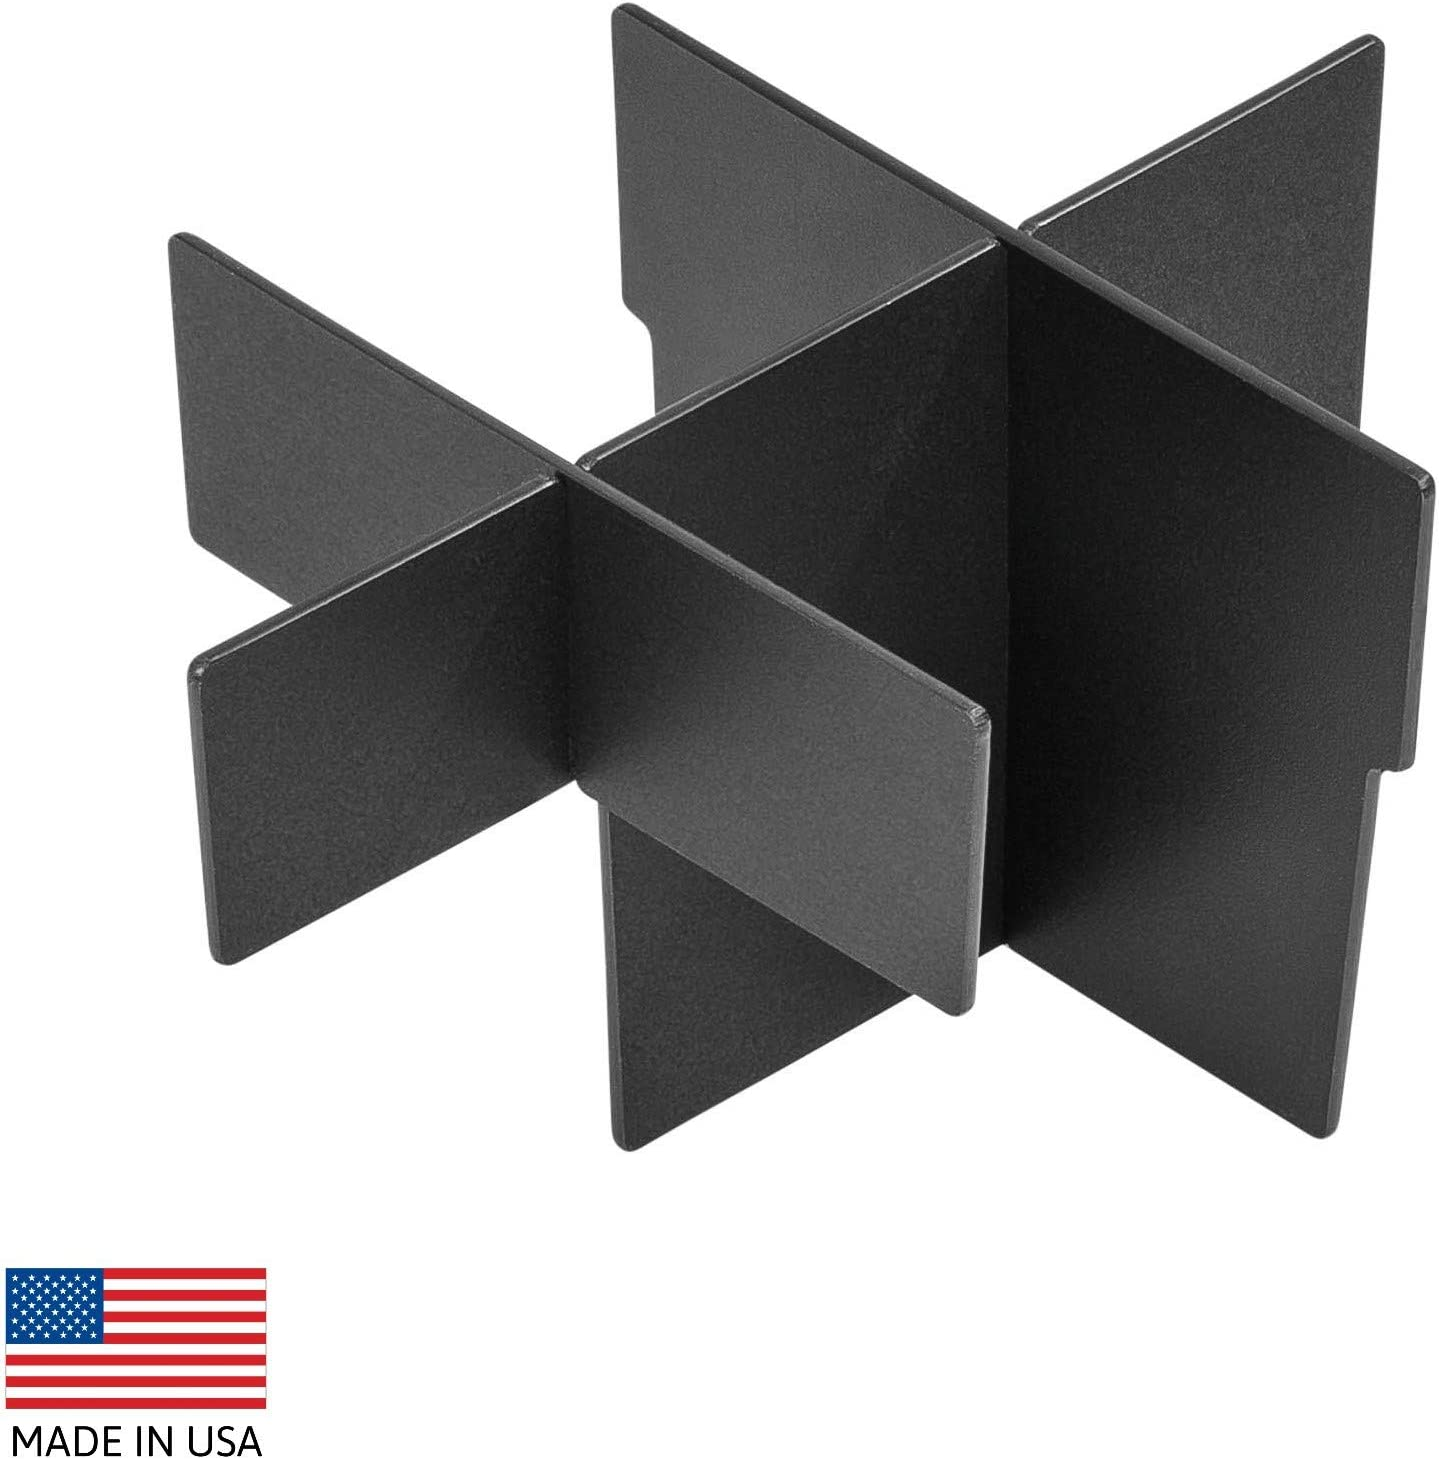 2010-2021 and Lexus GX 460 2010-2021 Glove Box Organizer compatible with Toyota 4Runner Vehicle OCD - Made in USA